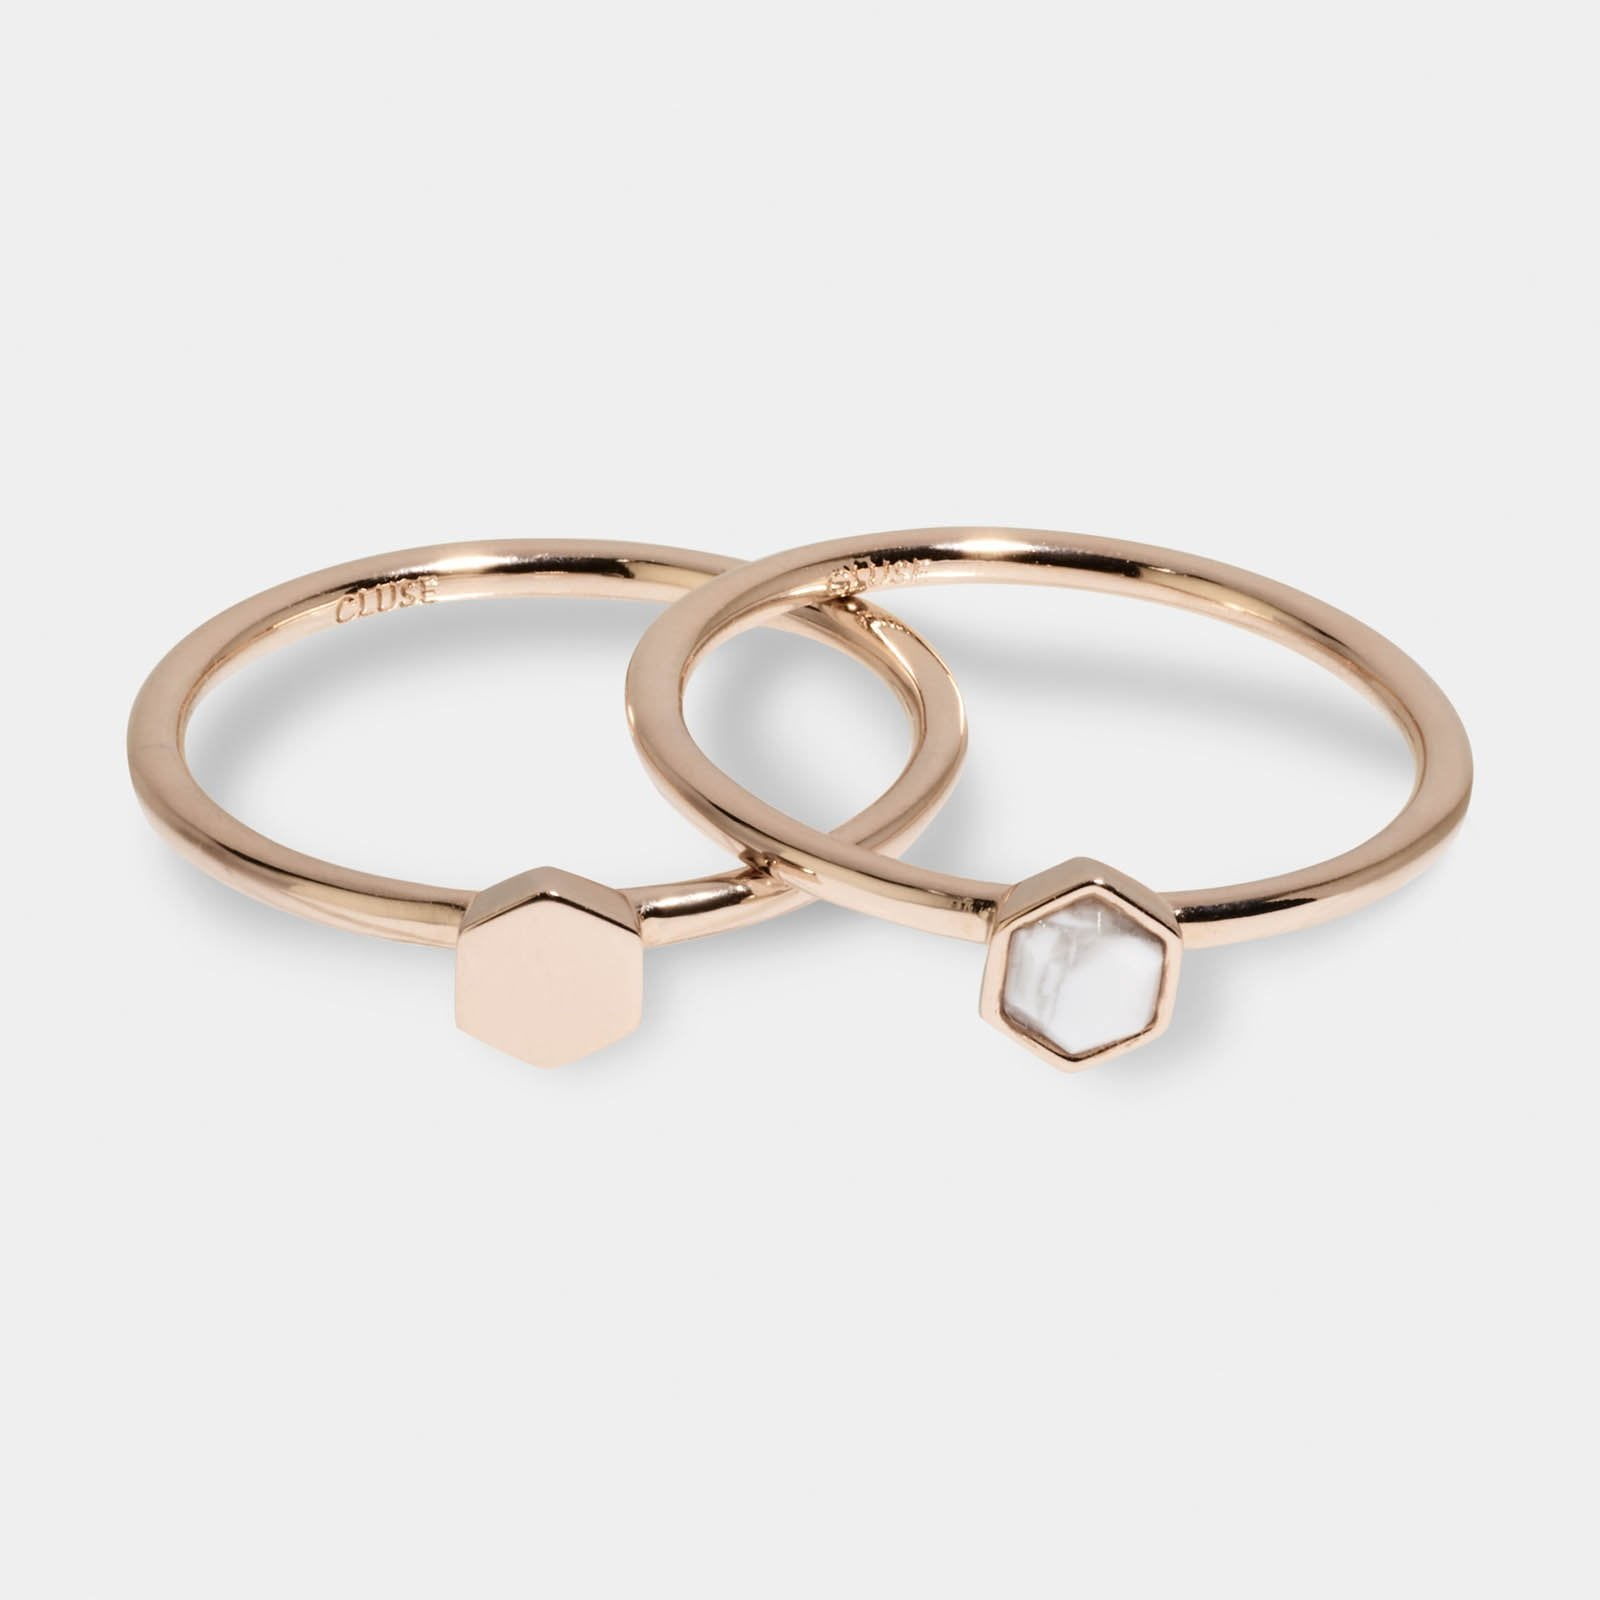 CLUSE Idylle Rose Gold Solid And Marble Hexagon Ring Set CLJ40001-54 - Ringgröße 54